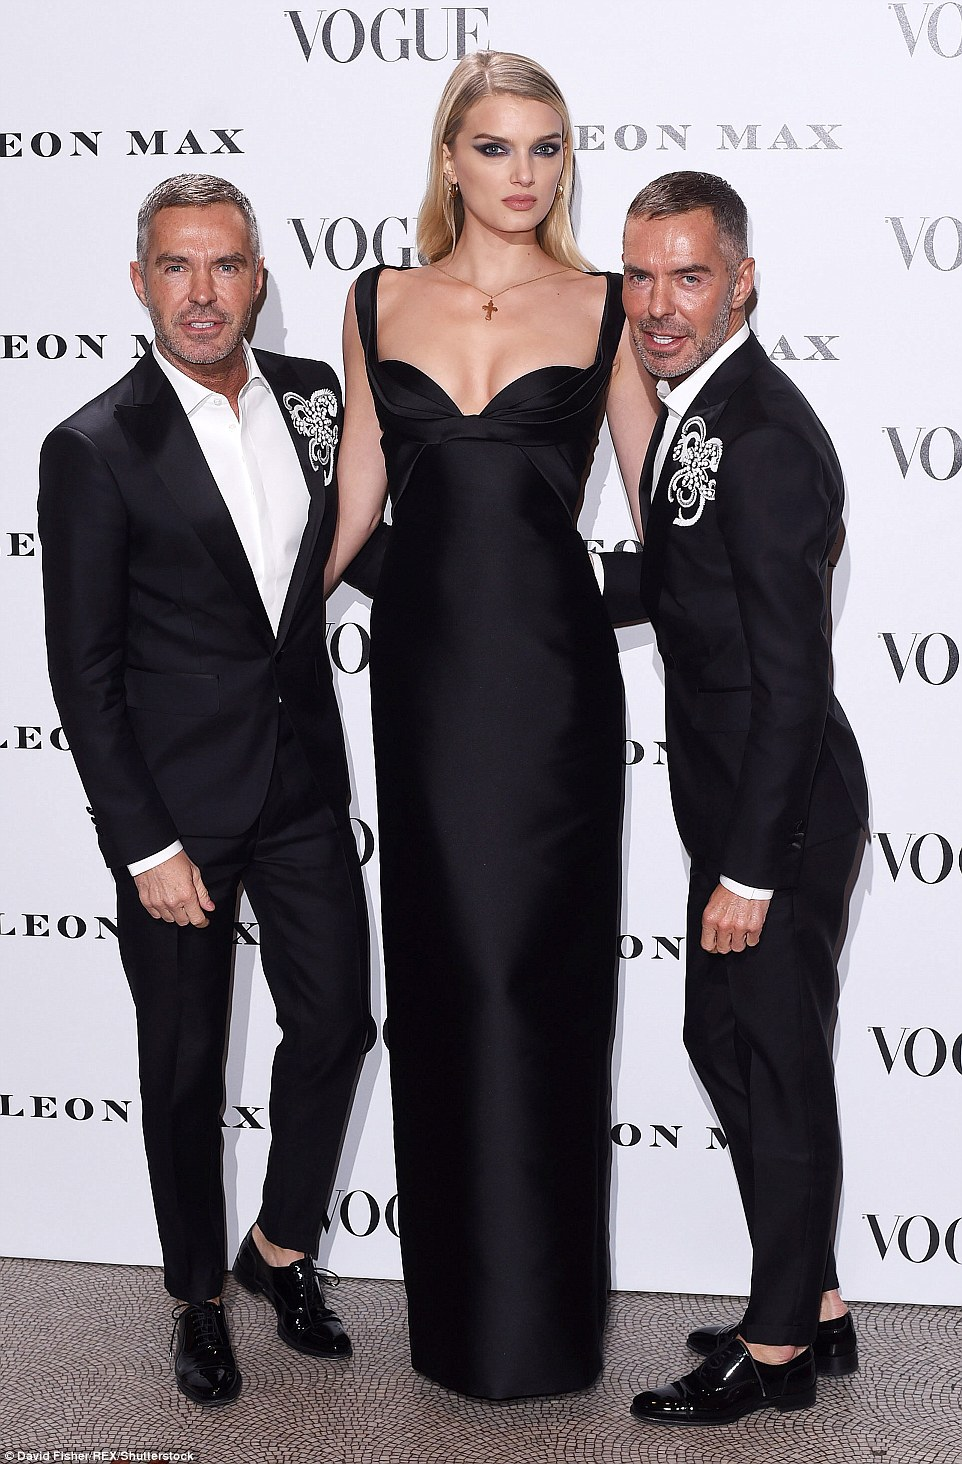 Lily Donaldson with Dean and Dan Caten celebrating 100 years of British vogue.